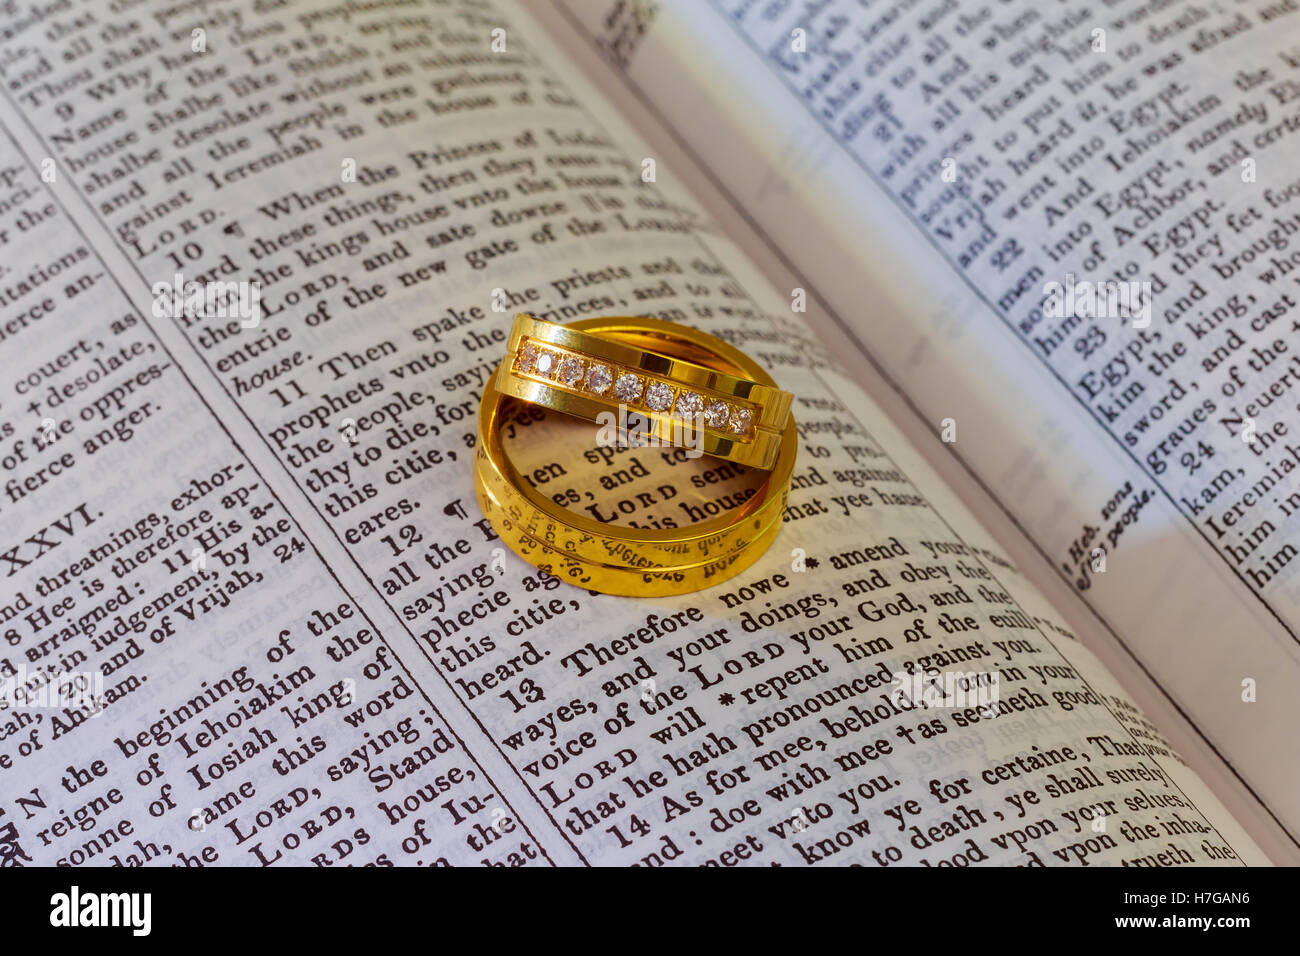 in casting photo shadow the heart bible wedding rings a stock scripture shaped